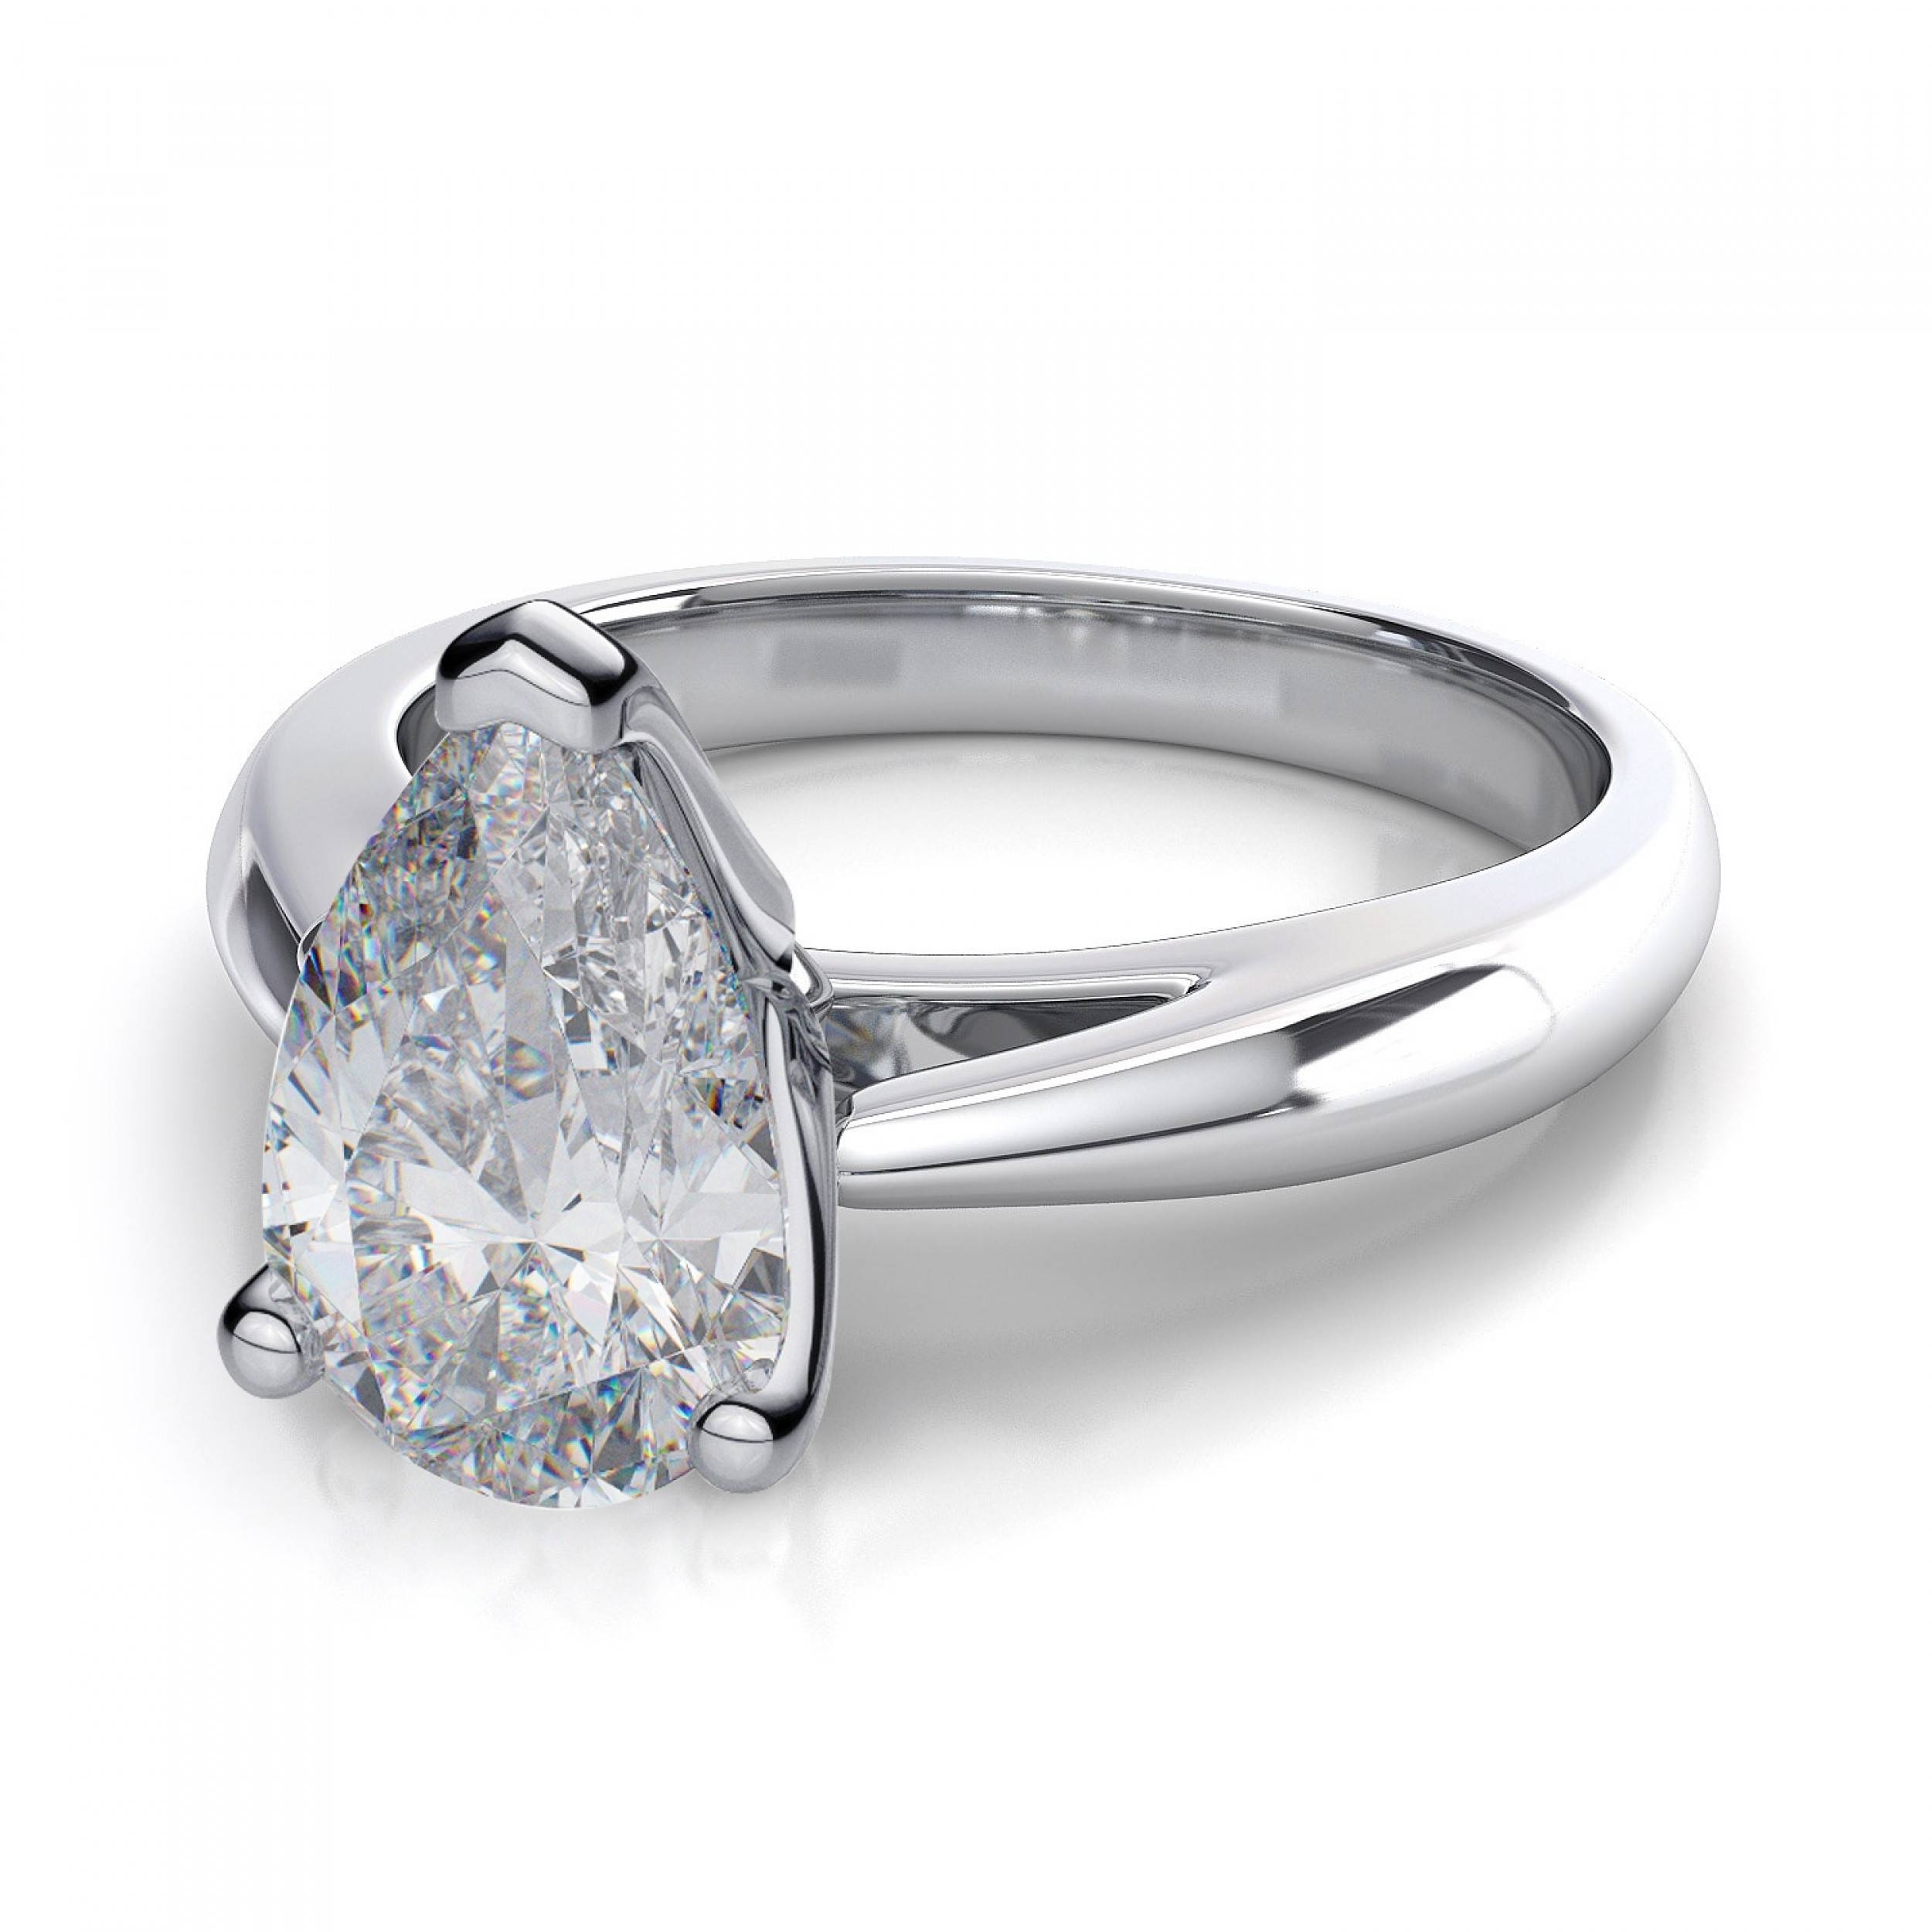 Knife Edge Pear Shape Diamond Solitaire Ring – Platinum Inside Pear Shaped Engagement Ring Settings (Gallery 4 of 15)